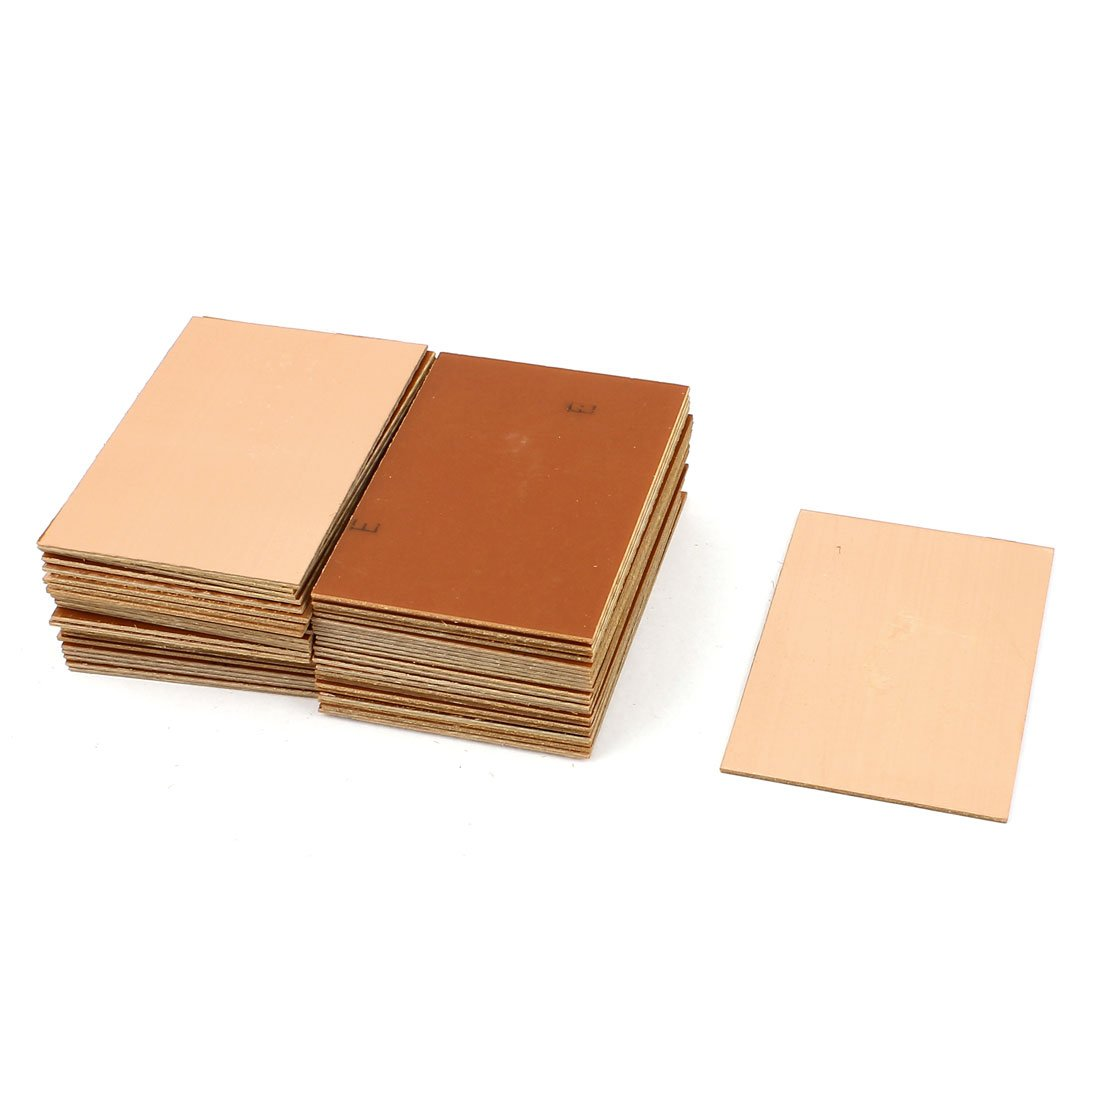 Uxcell a15071000ux0213 50 Piece 70 x 100 x 1.5 mm FR-4 Single Side Copper Clad PCB Laminate Board